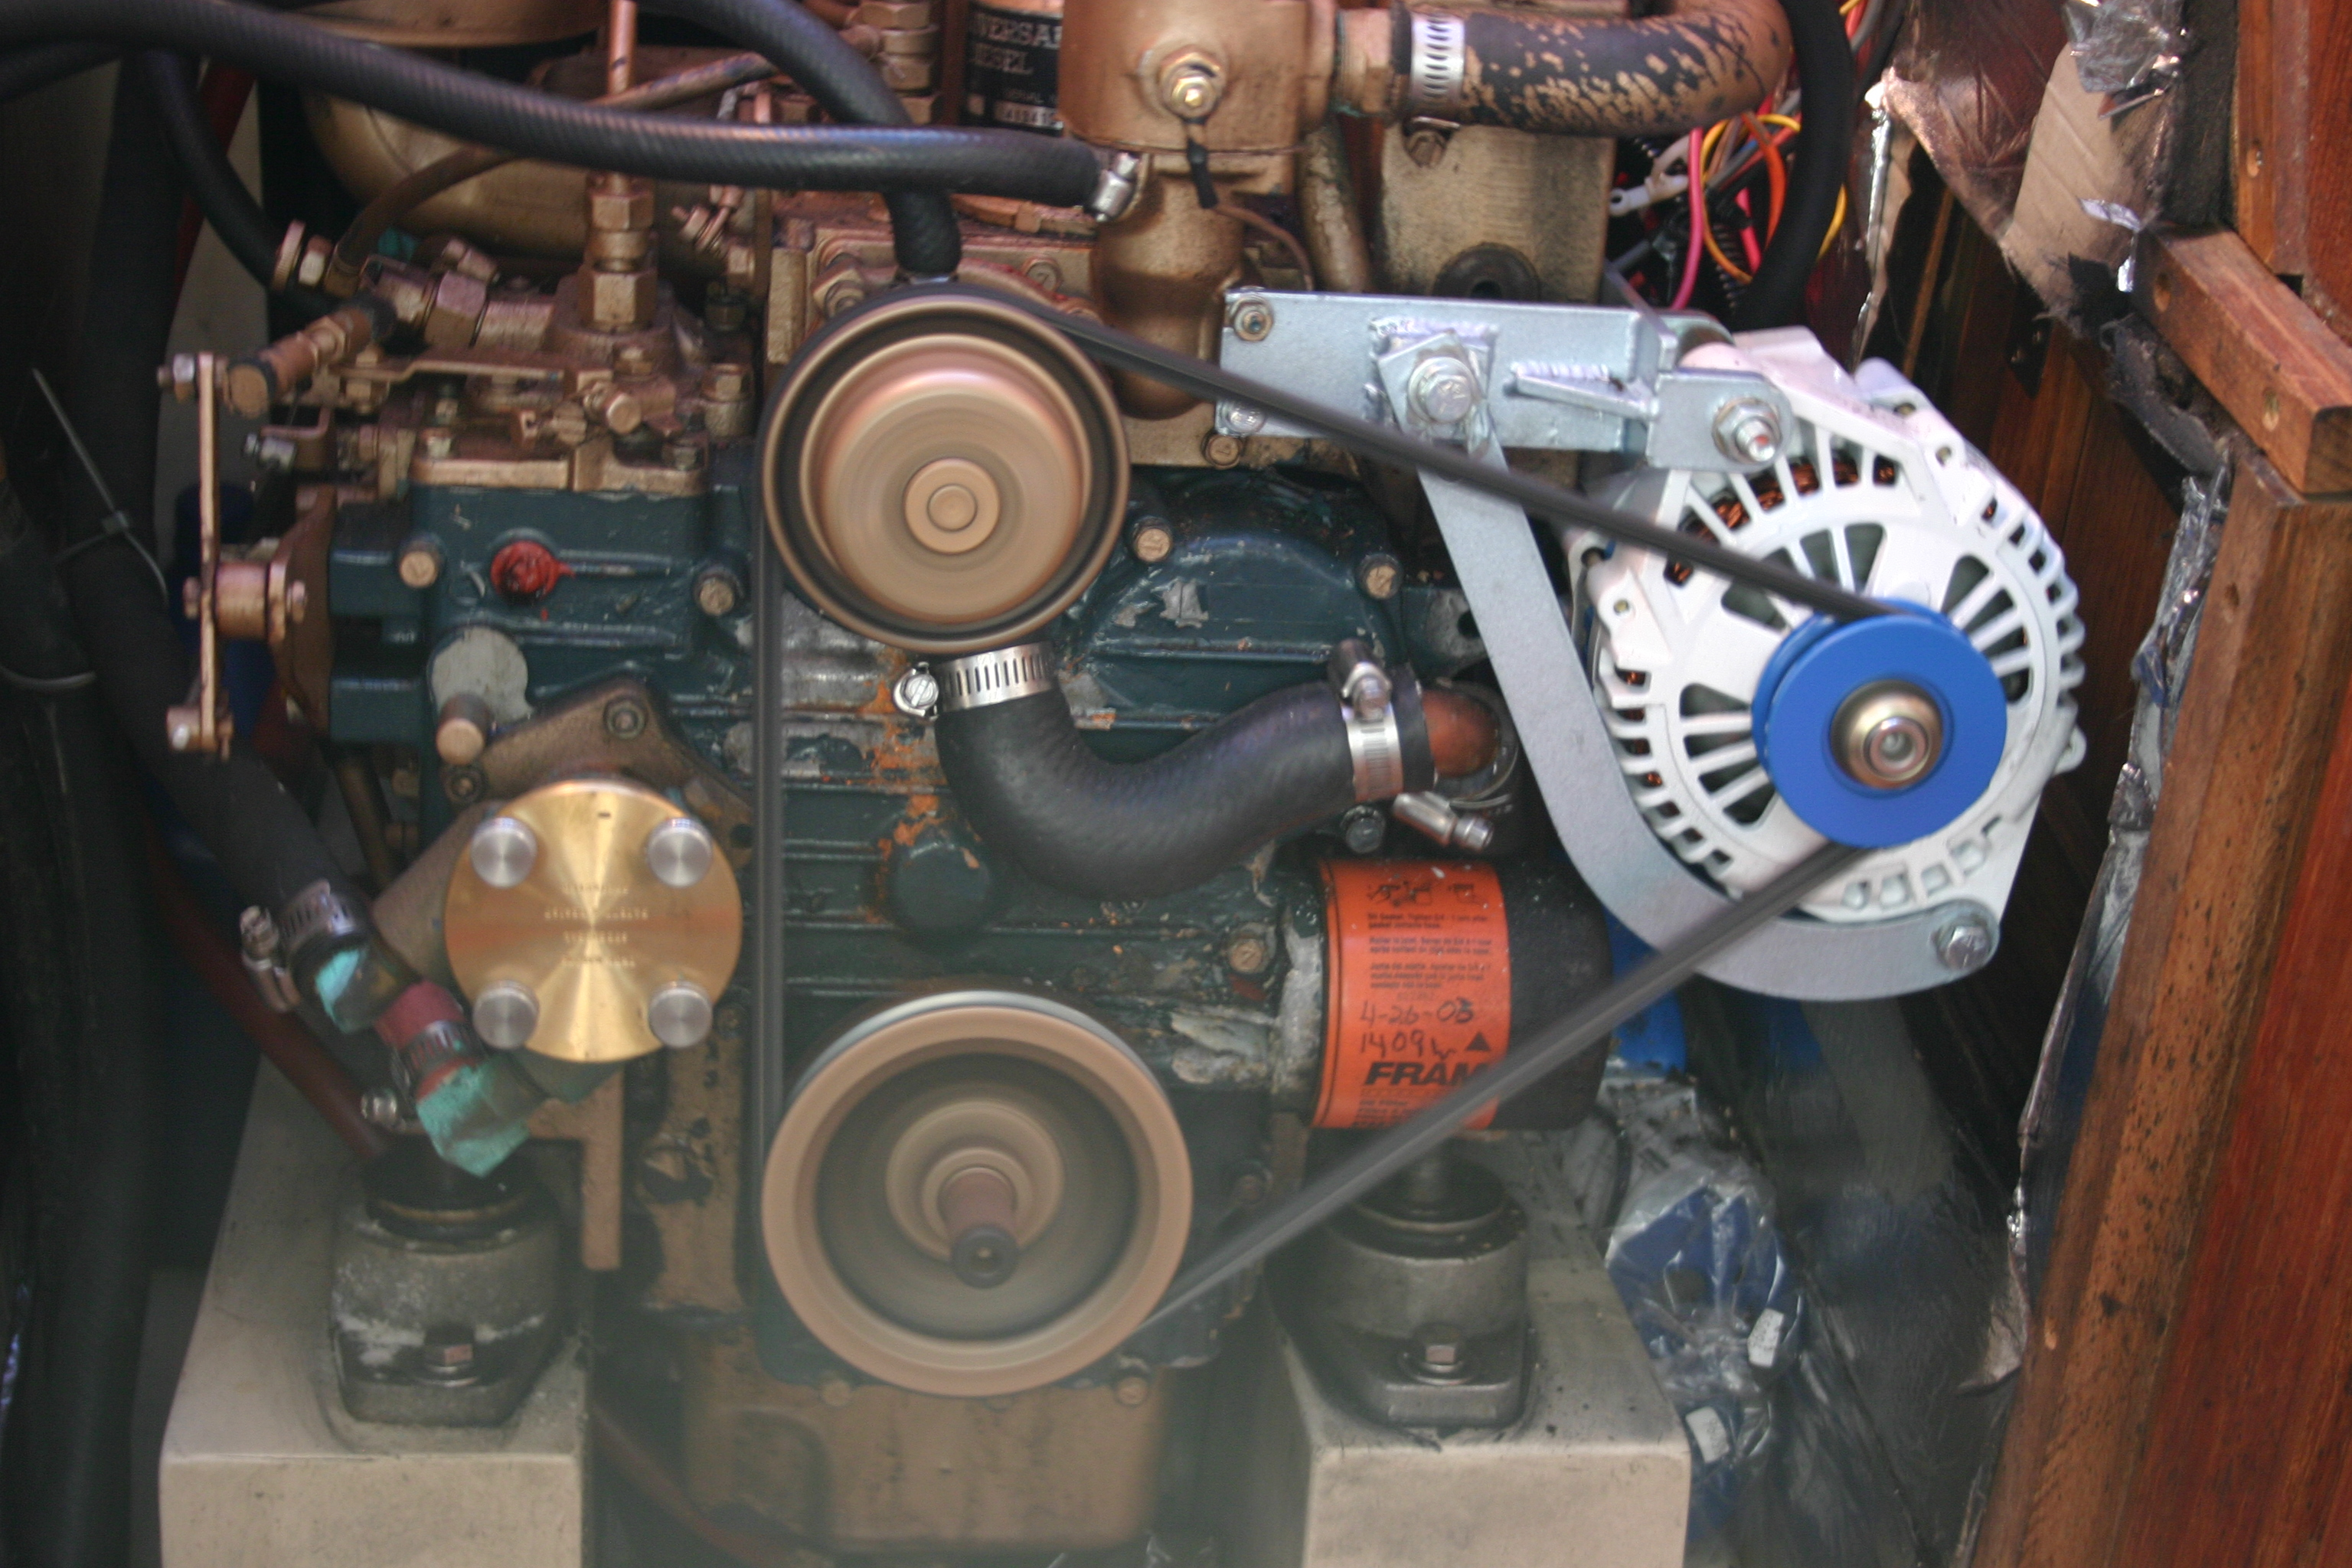 Balmar Alternator Wiring Diagram Libraries Simple 6 Series Home Page Brochures Contribute Cool Stuff Database Faq Fleets Forthe H Version Of The Regulator Means That Provided A Prefabricated Harness